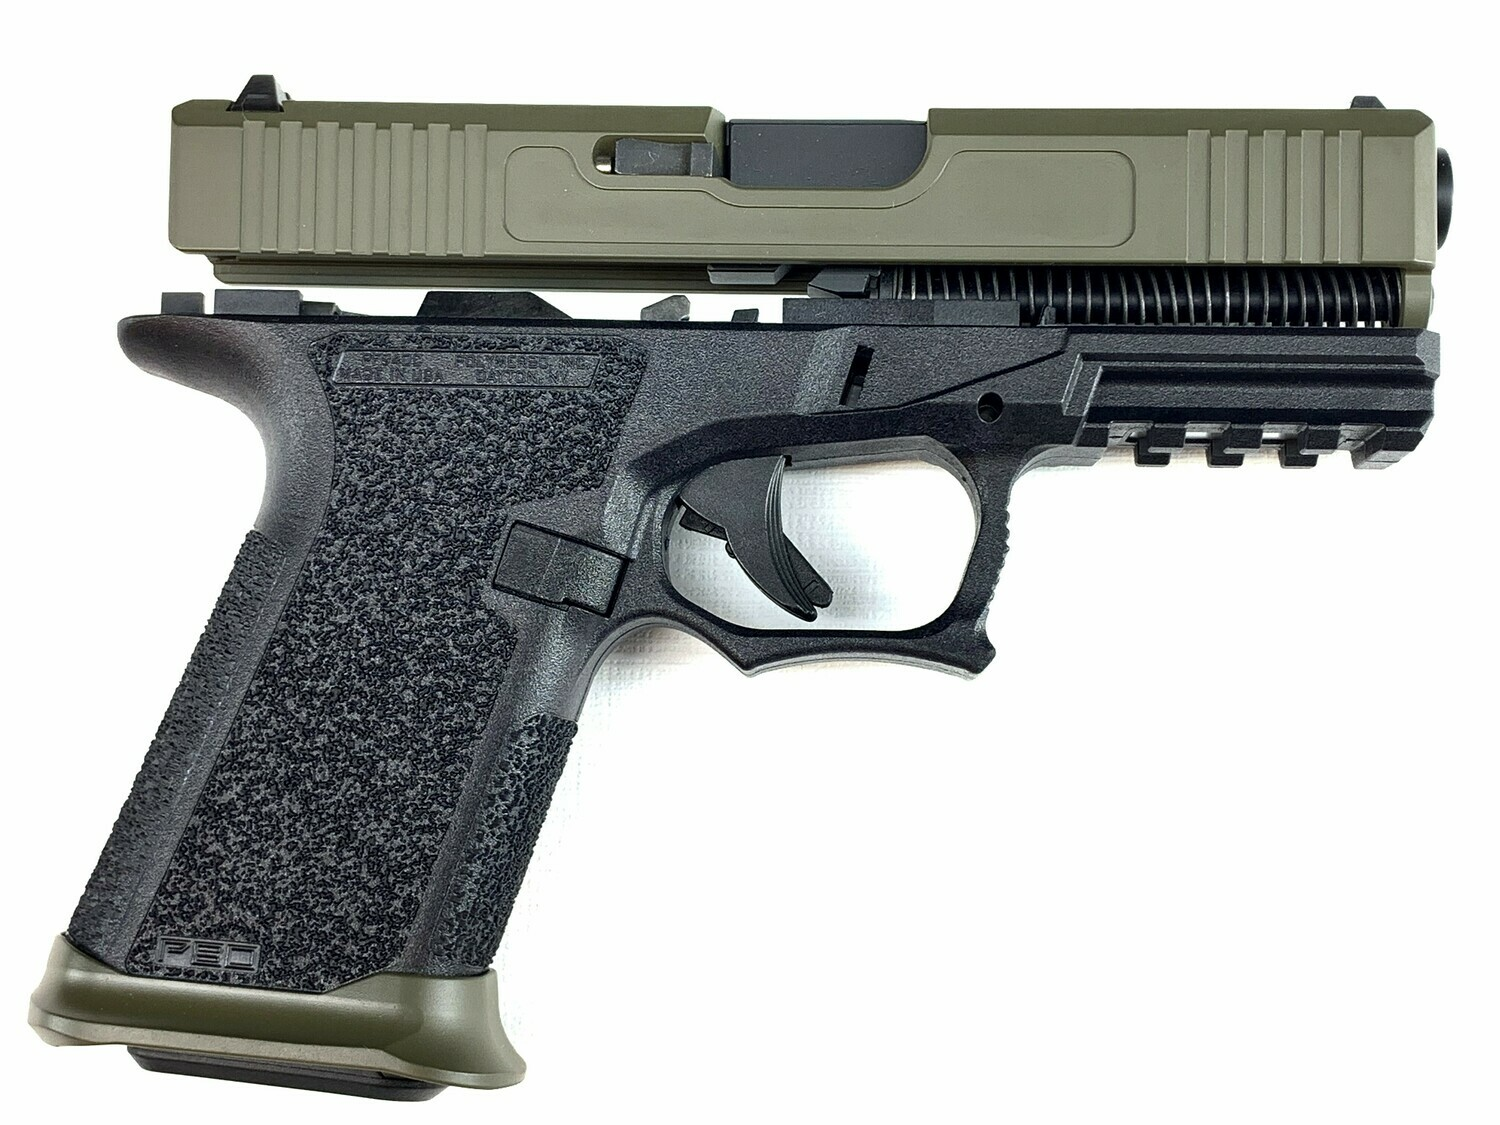 Patriot G19 80% Pistol Build Kit 9mm - Polymer80 PF940C Black - OD Green Slide - Steel City Arsenal Magwell OD Green - 10rd Mag